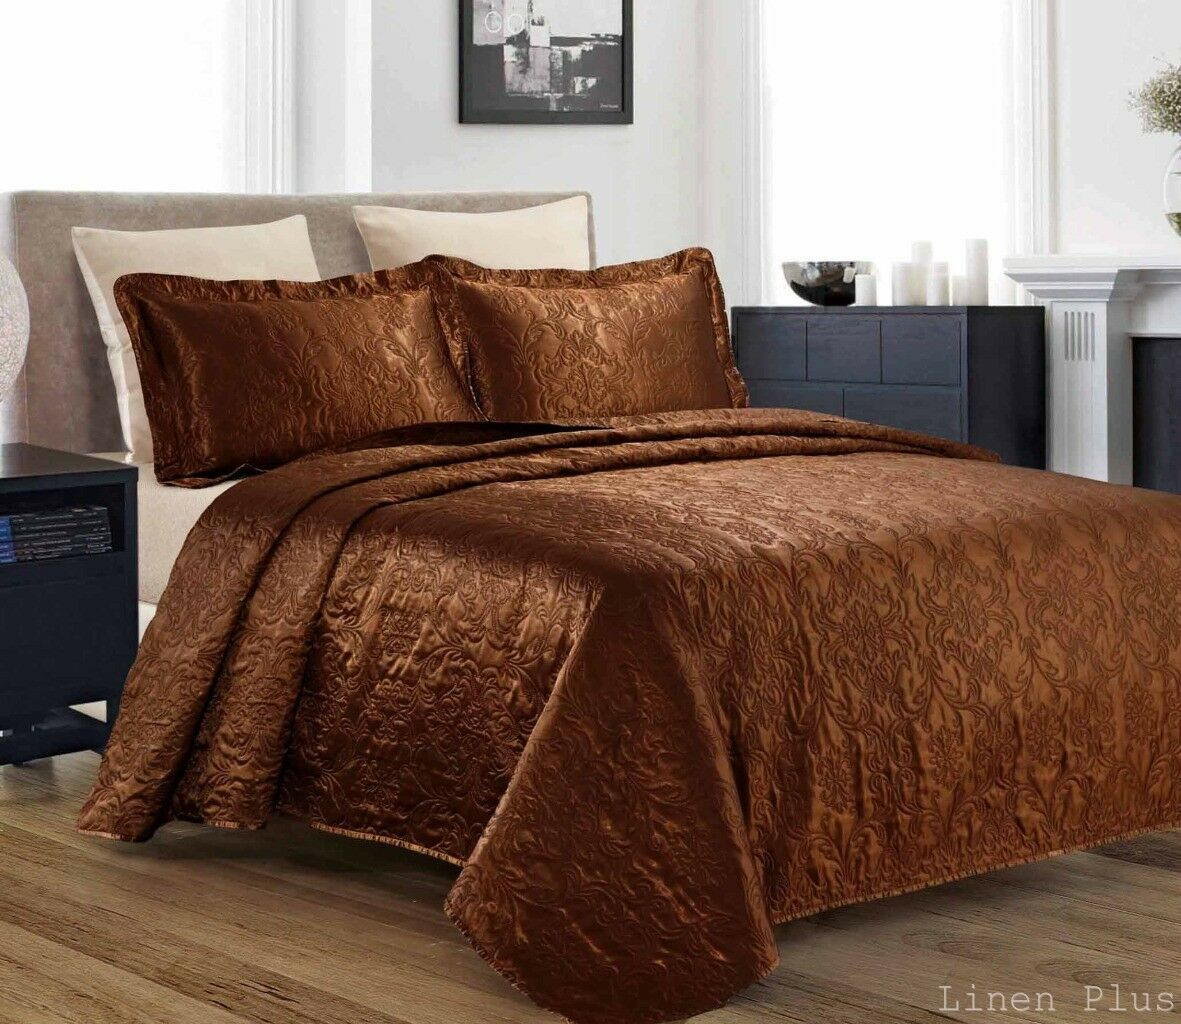 quilted bedspreads king size 3 piece silky satin brown quilted bedspread coverlet set king size